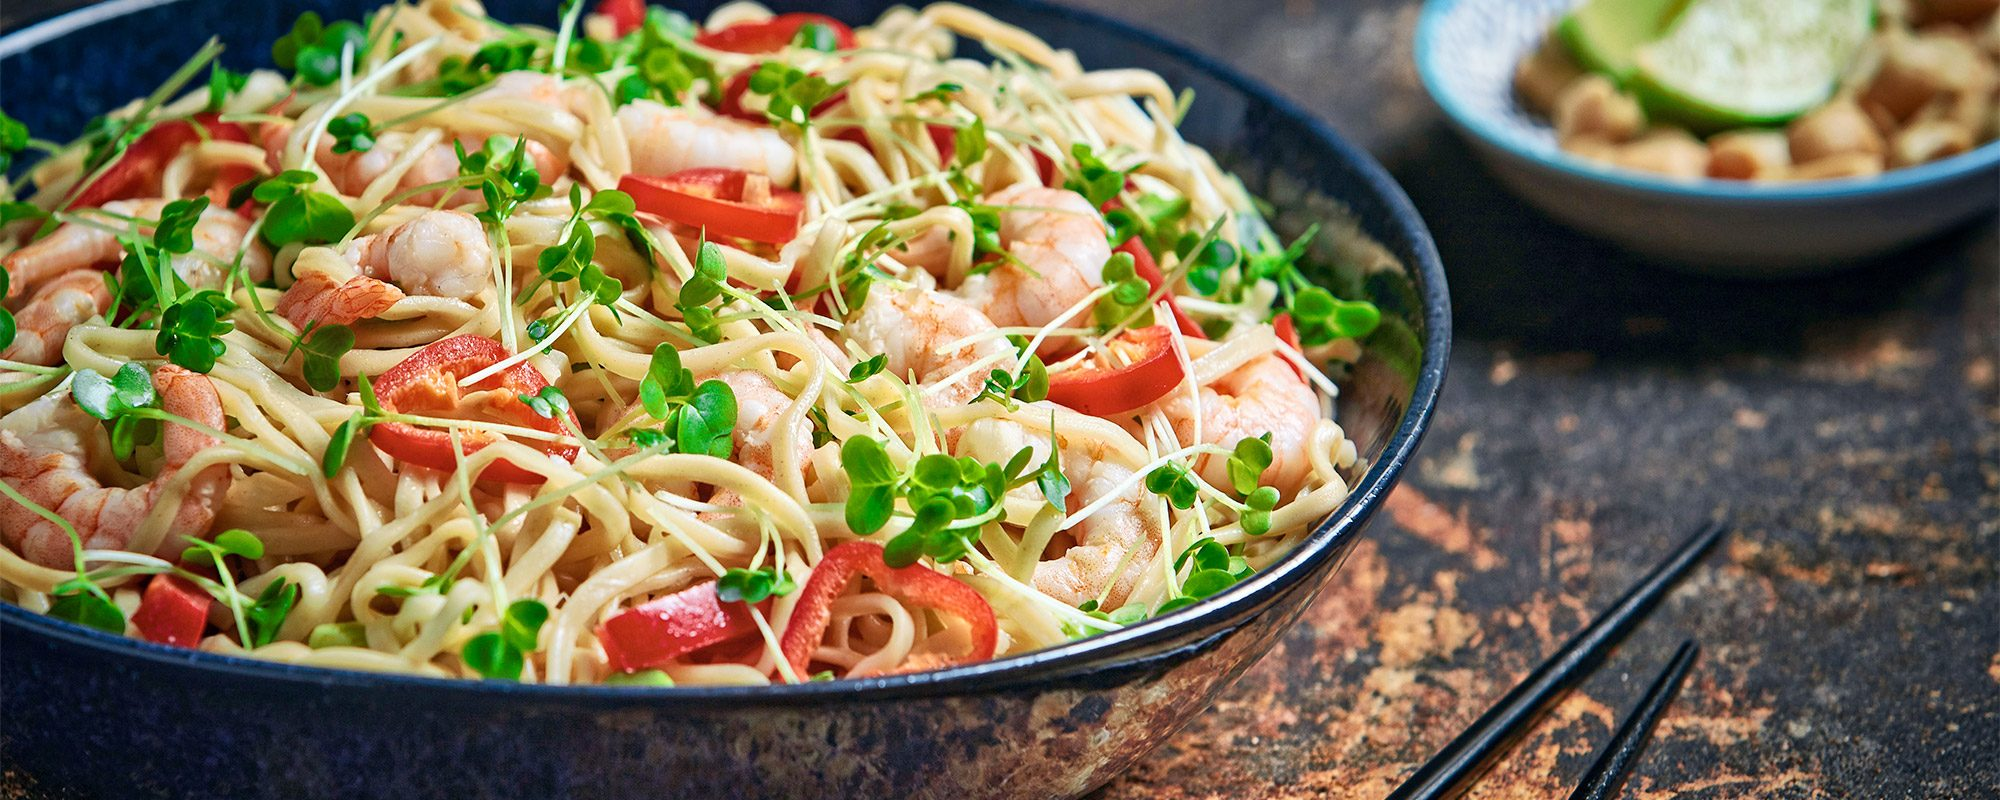 Prawn and Red Chilli Stir-Fry with Salad Cress